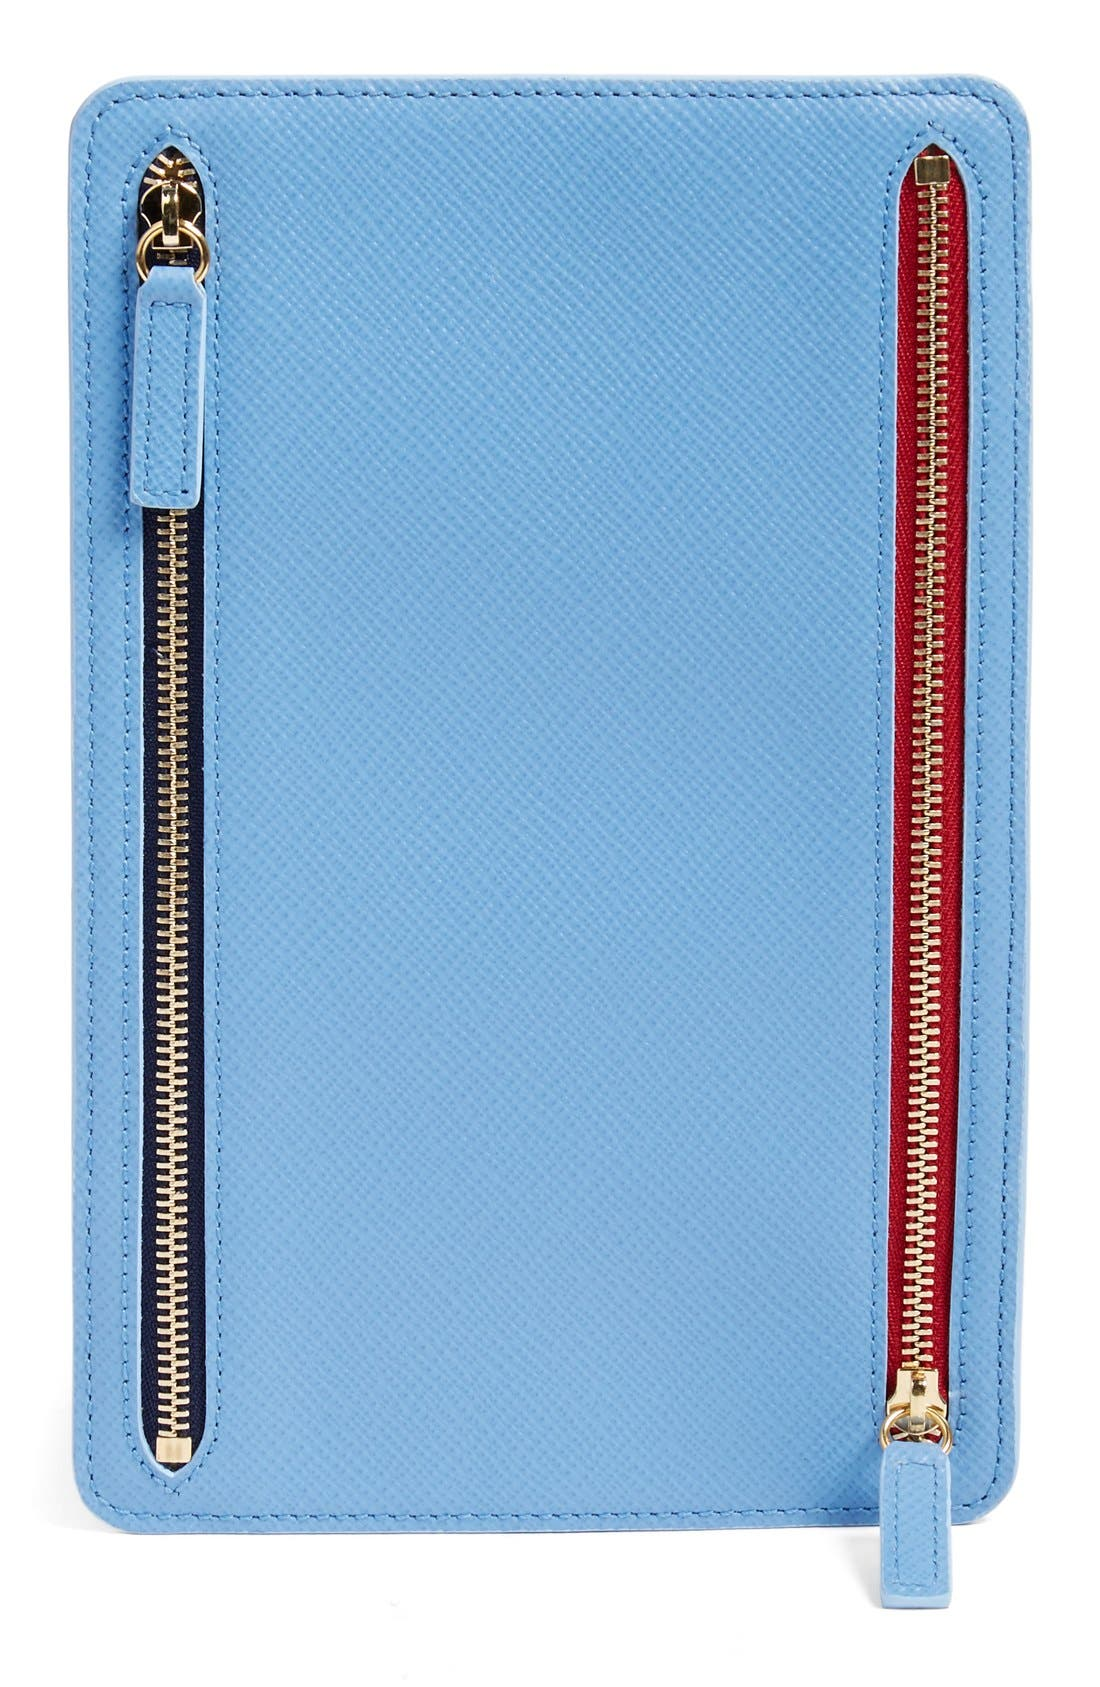 'Panama' Zip Currency Case,                             Alternate thumbnail 2, color,                             NILE BLUE